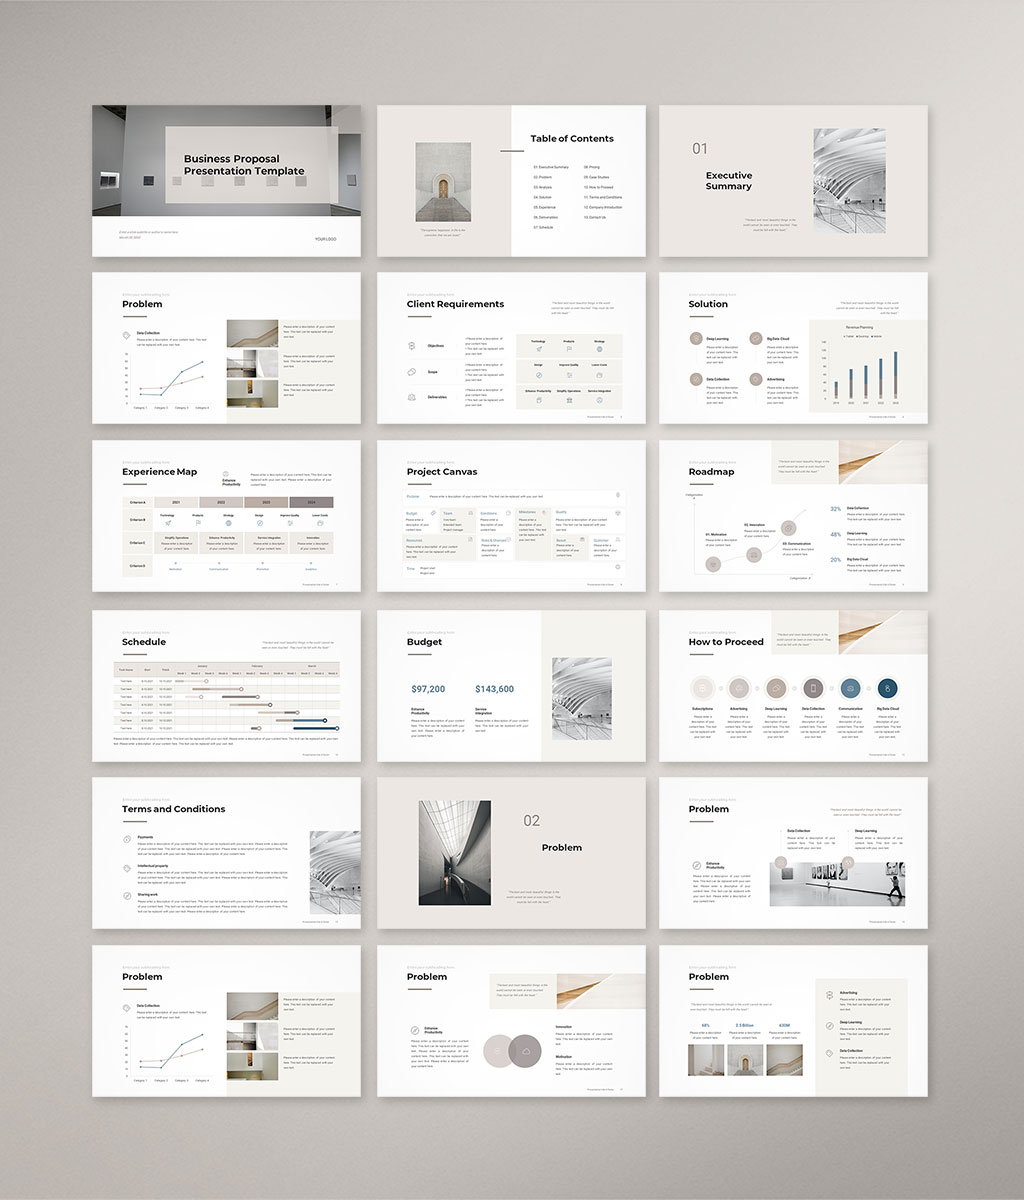 Business-Proposal-Template-Preview_001